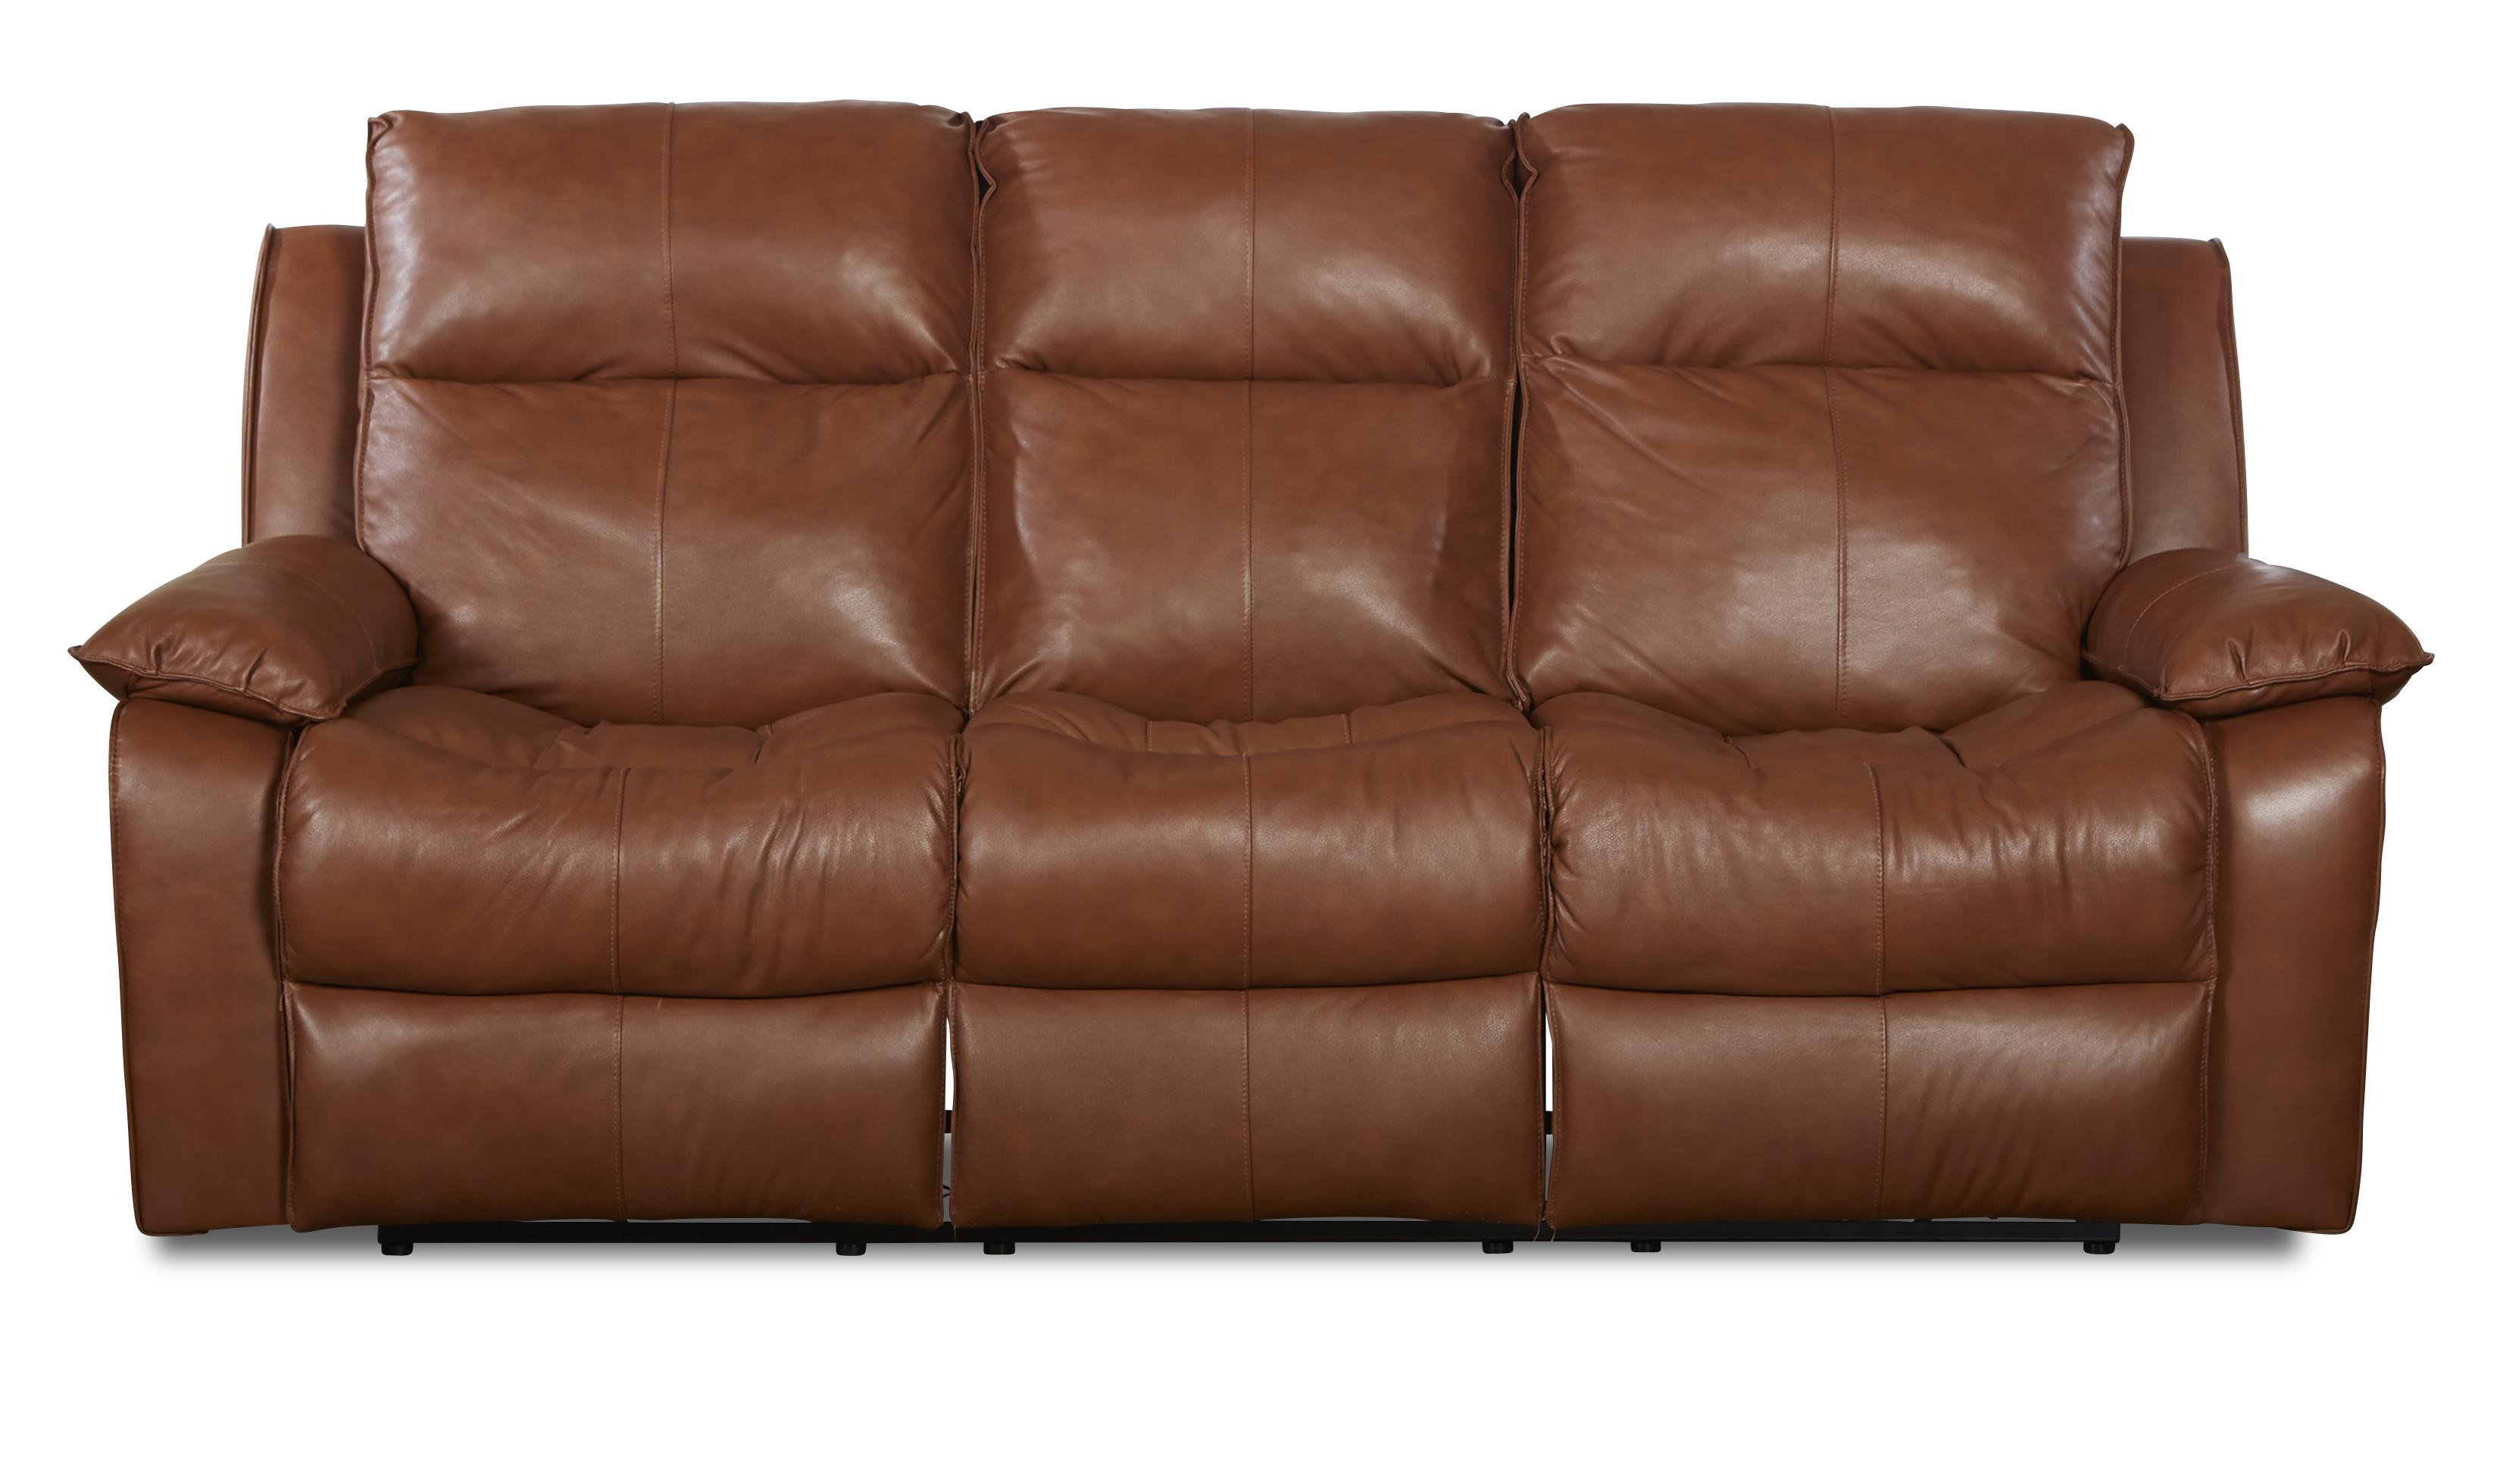 bentley casual sectional sofa with slipcover by klaussner barcelona set castaway power reclining bucket